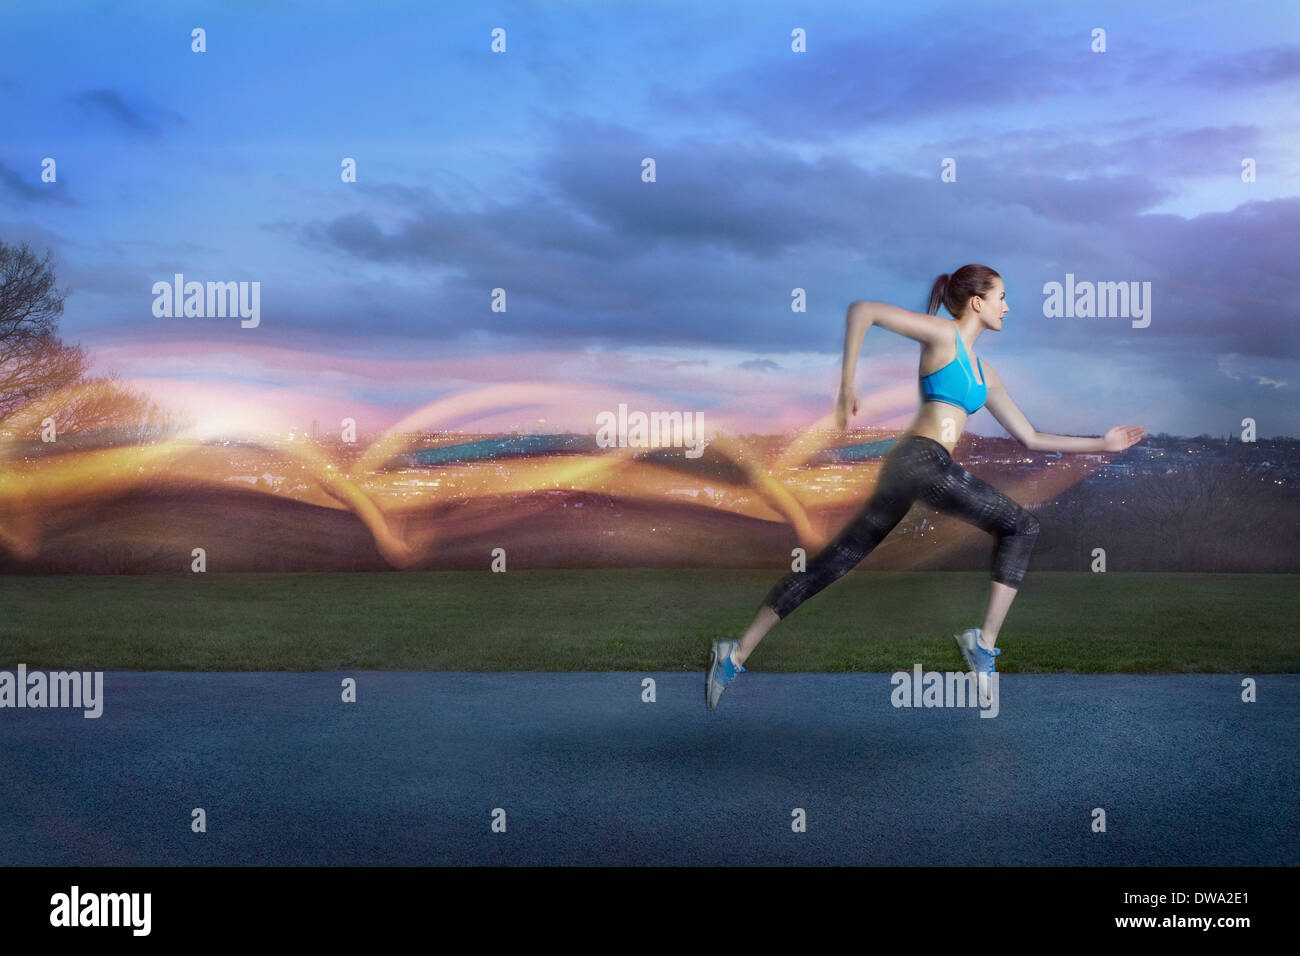 Young woman running with light trails - Stock Image